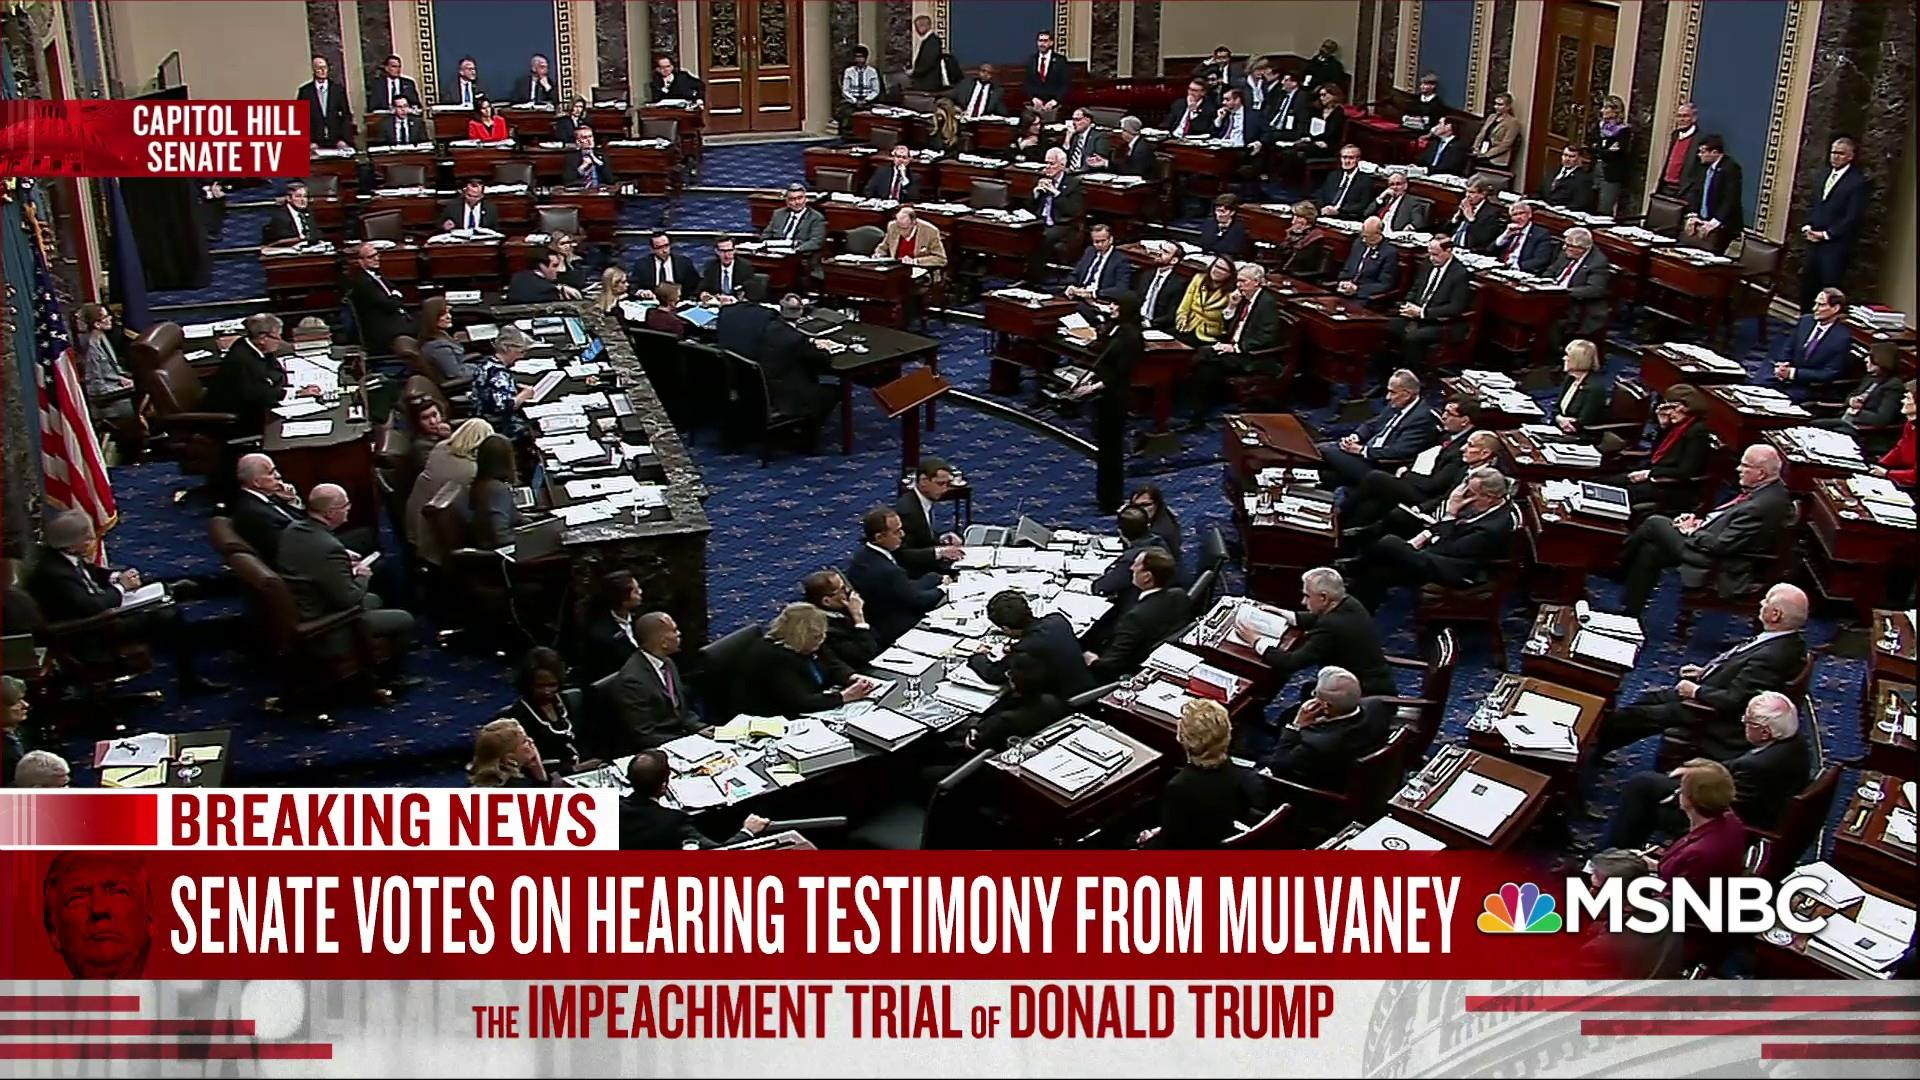 Intentional lying in Senate trial puts lawyers' licenses at risk